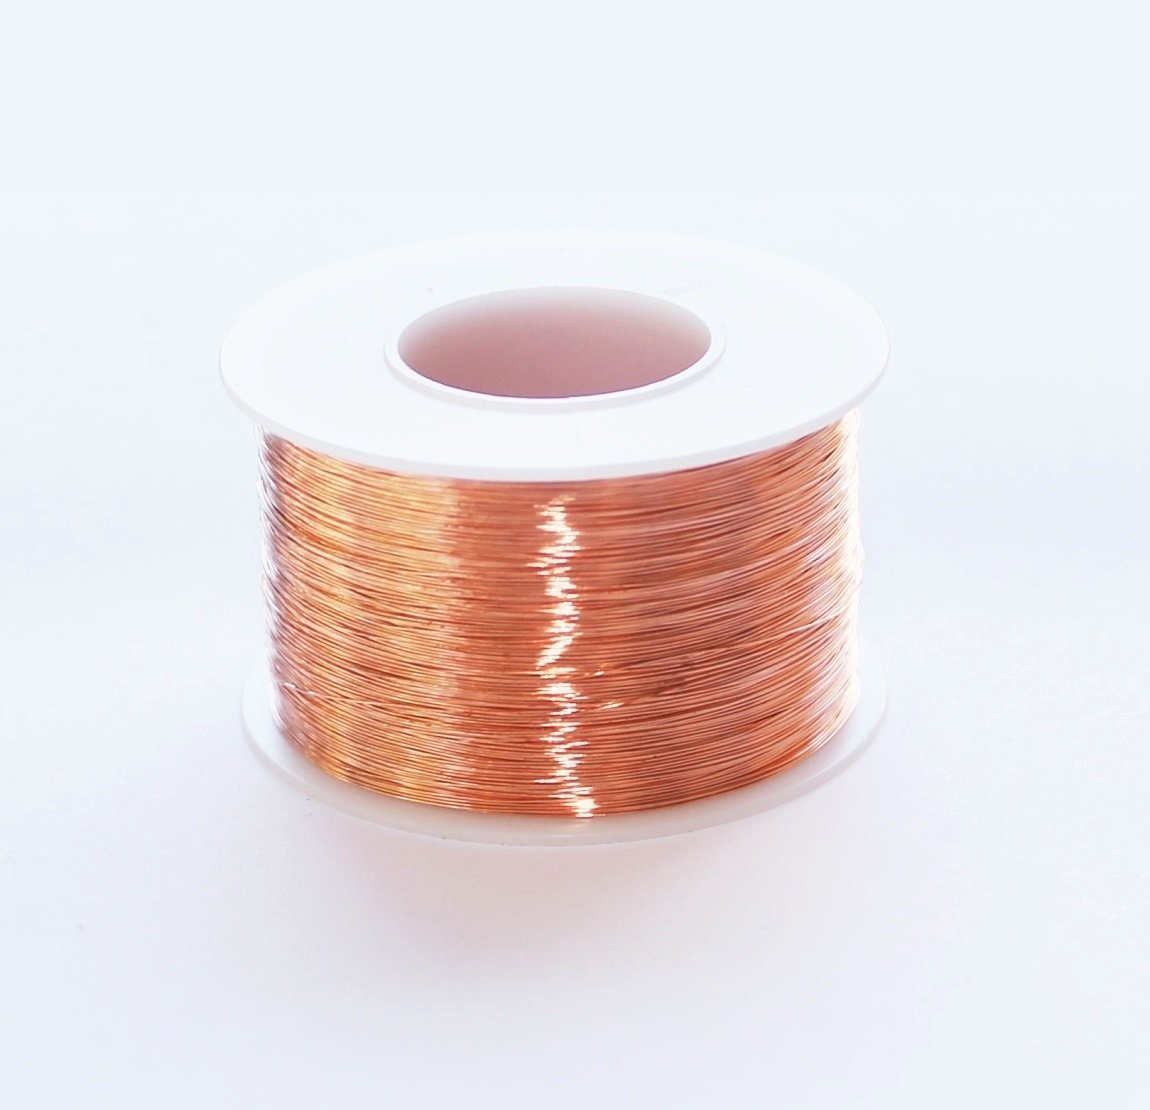 Bare Copper Wire; For general lab use; Comes in 454g spools; 1 lb. 22 AWG